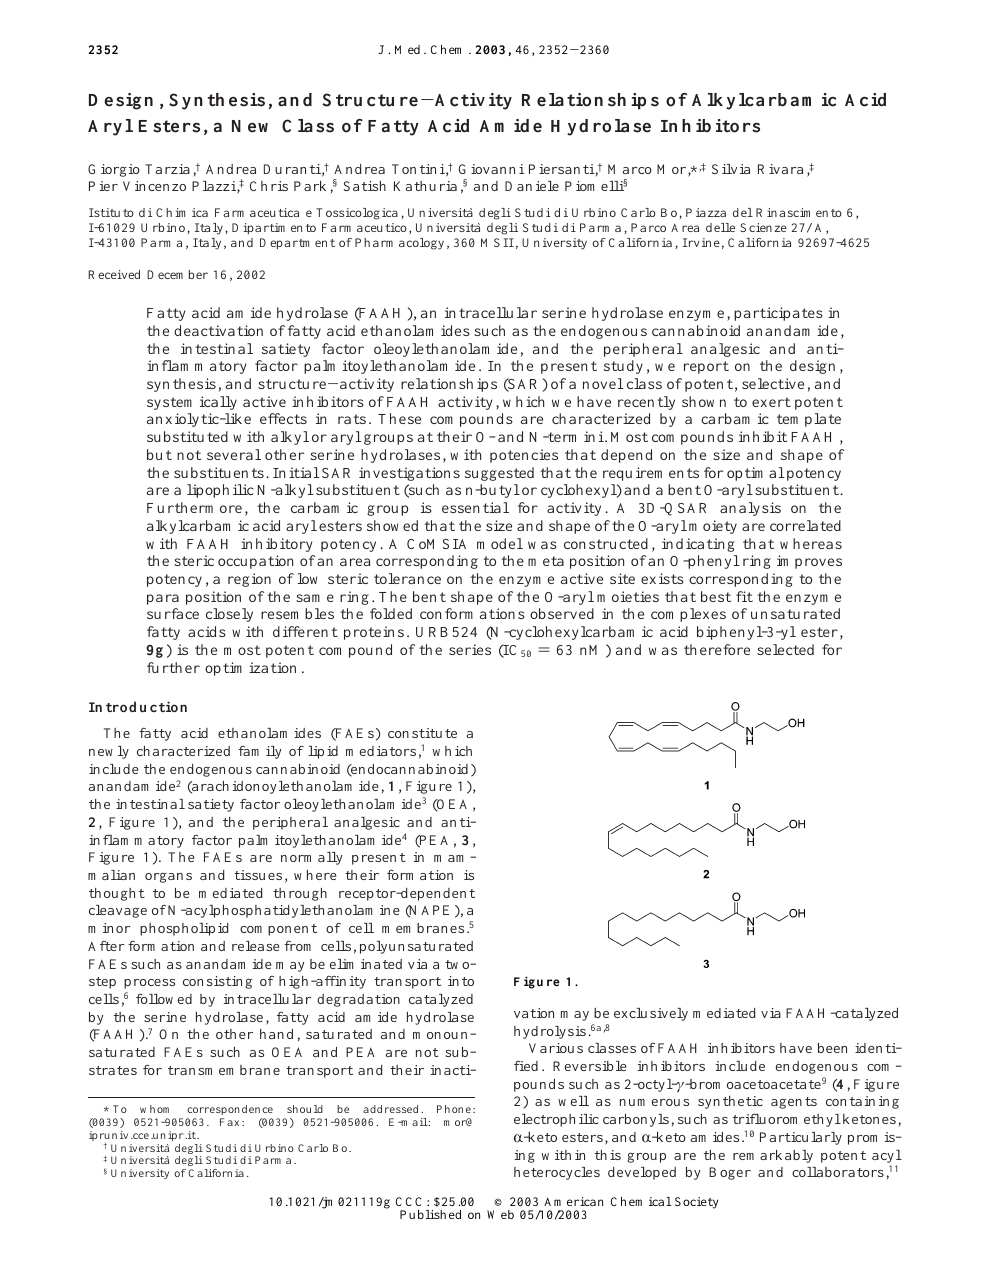 Design, Synthesis, and Structure−Activity Relationships of